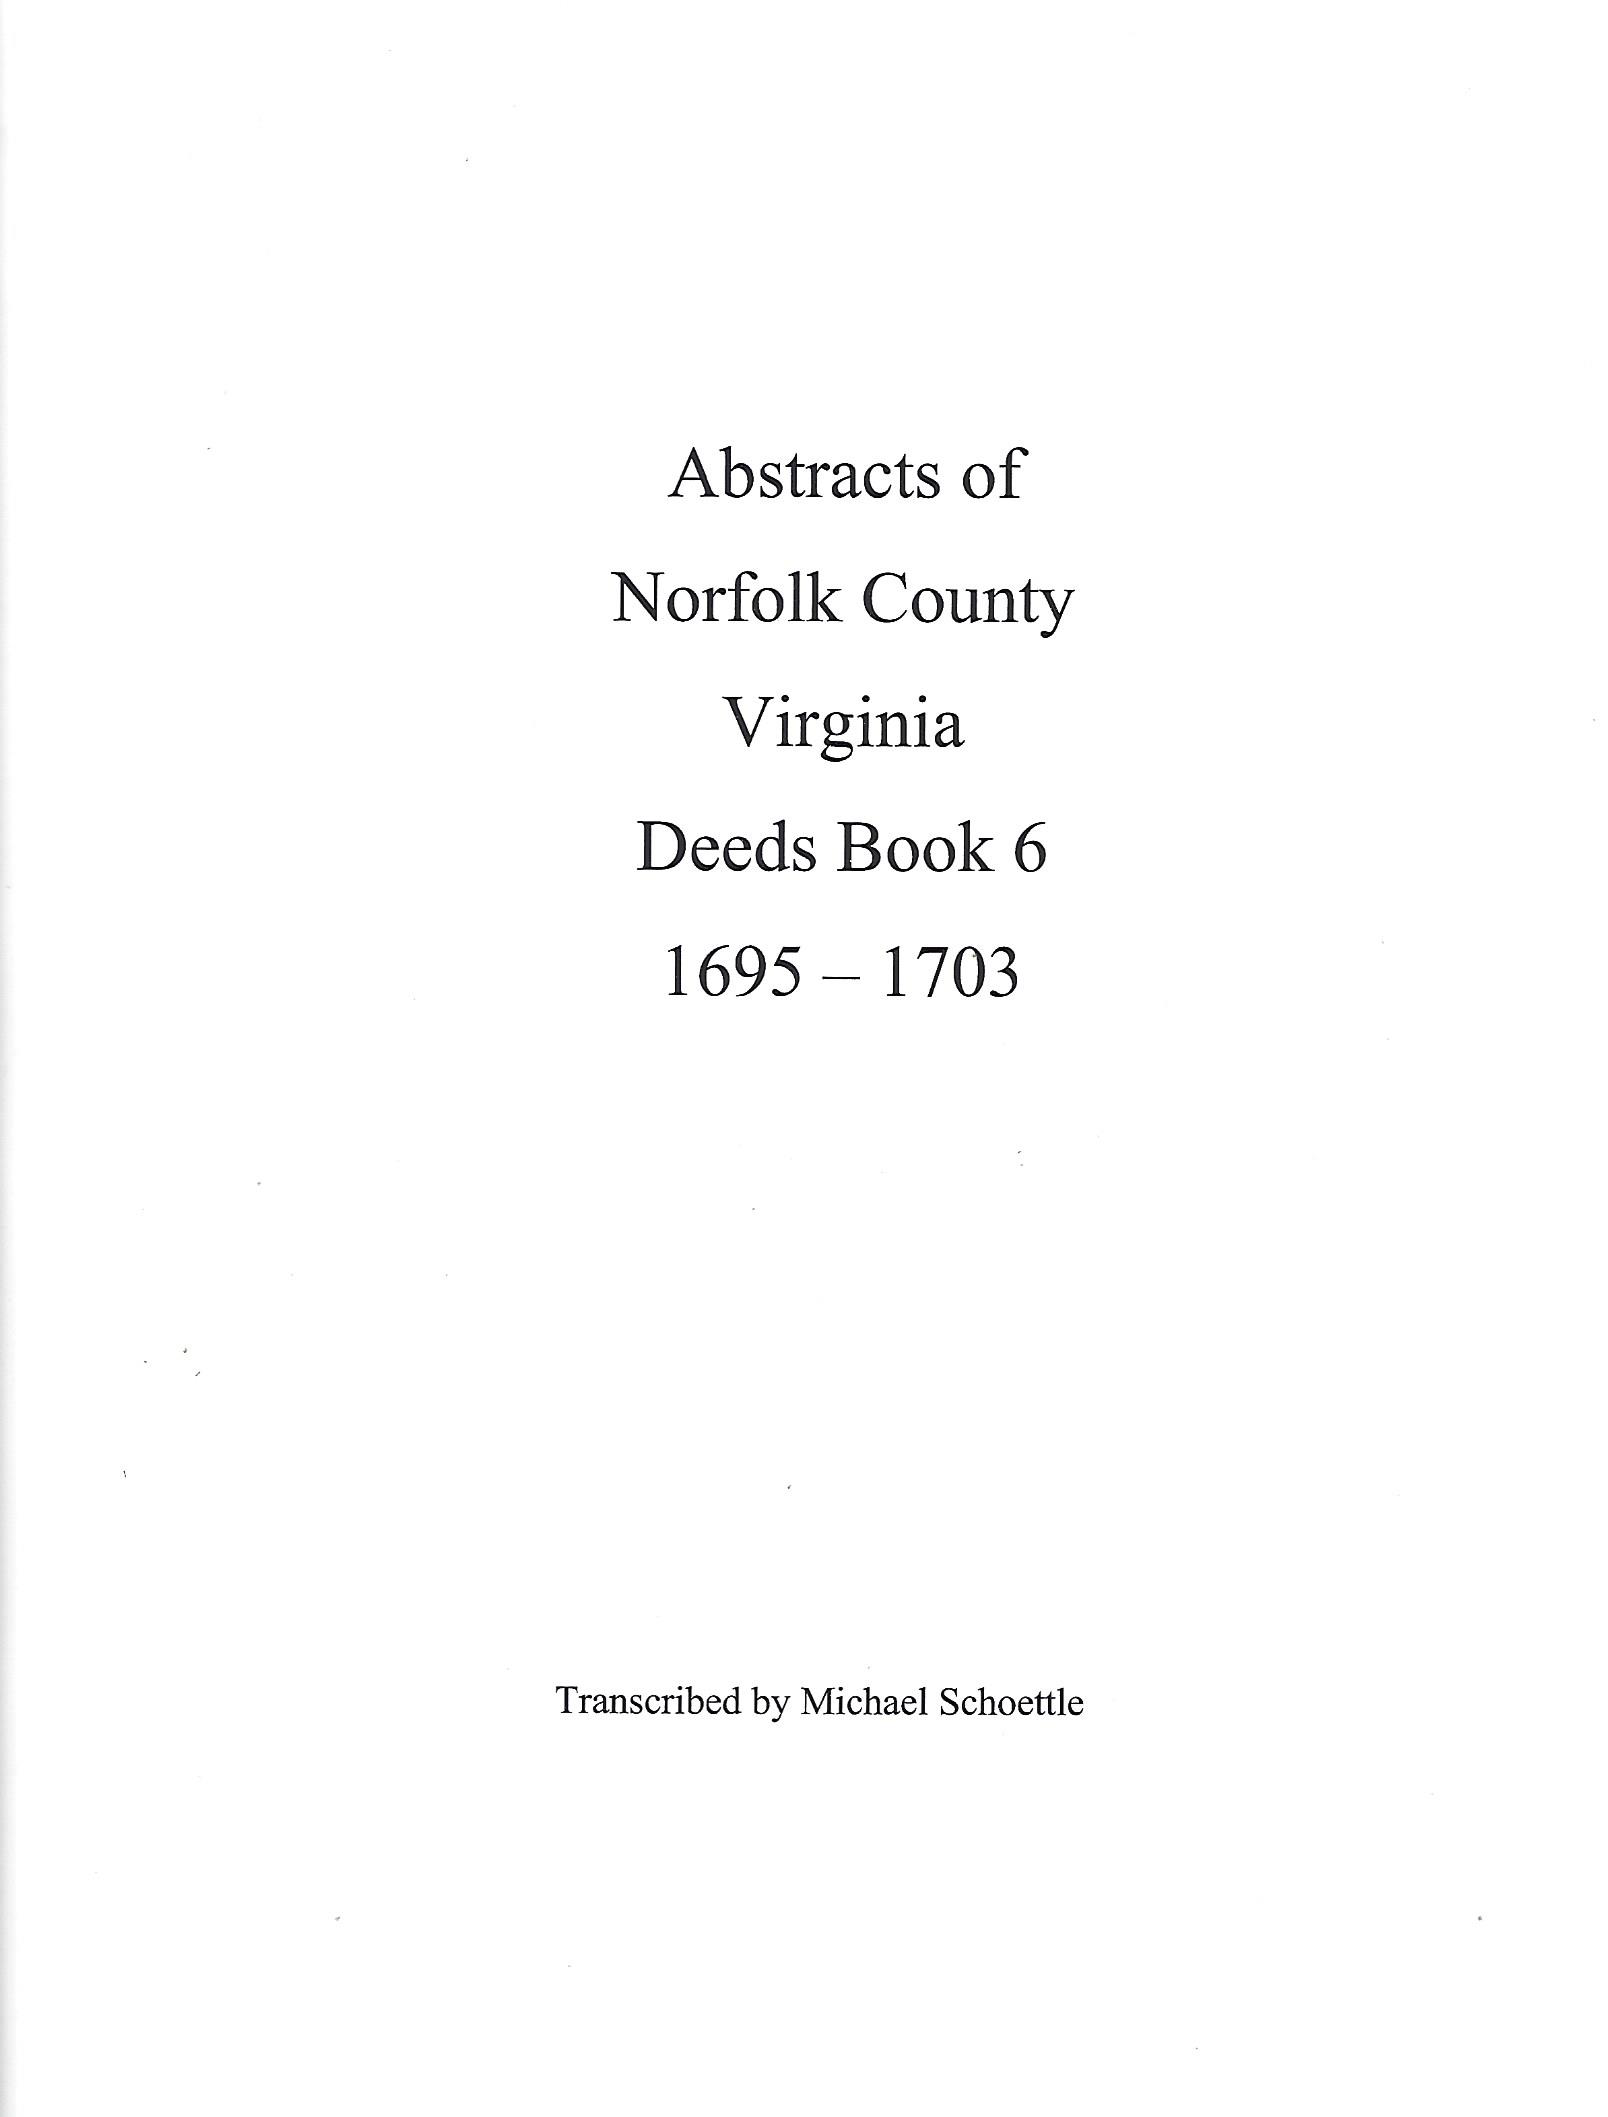 Abstracts of Norfolk County VA Deed Book 6